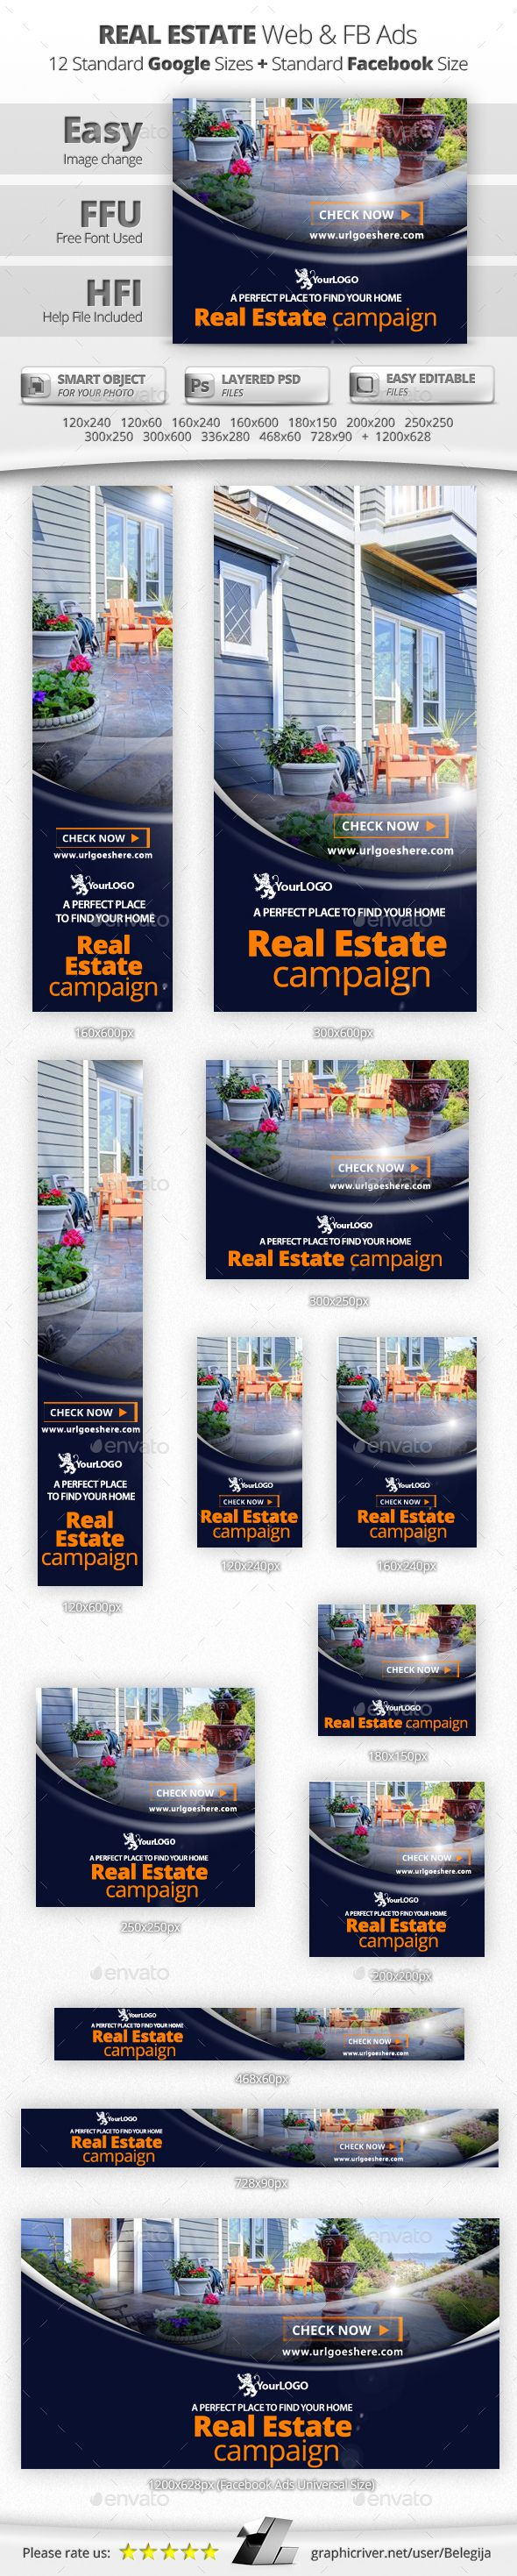 Real Estate Web & Facebook Banners — Photoshop PSD #advertising #real estate • Available here → https://graphicriver.net/item/real-estate-web-facebook-banners/14075635?ref=pxcr